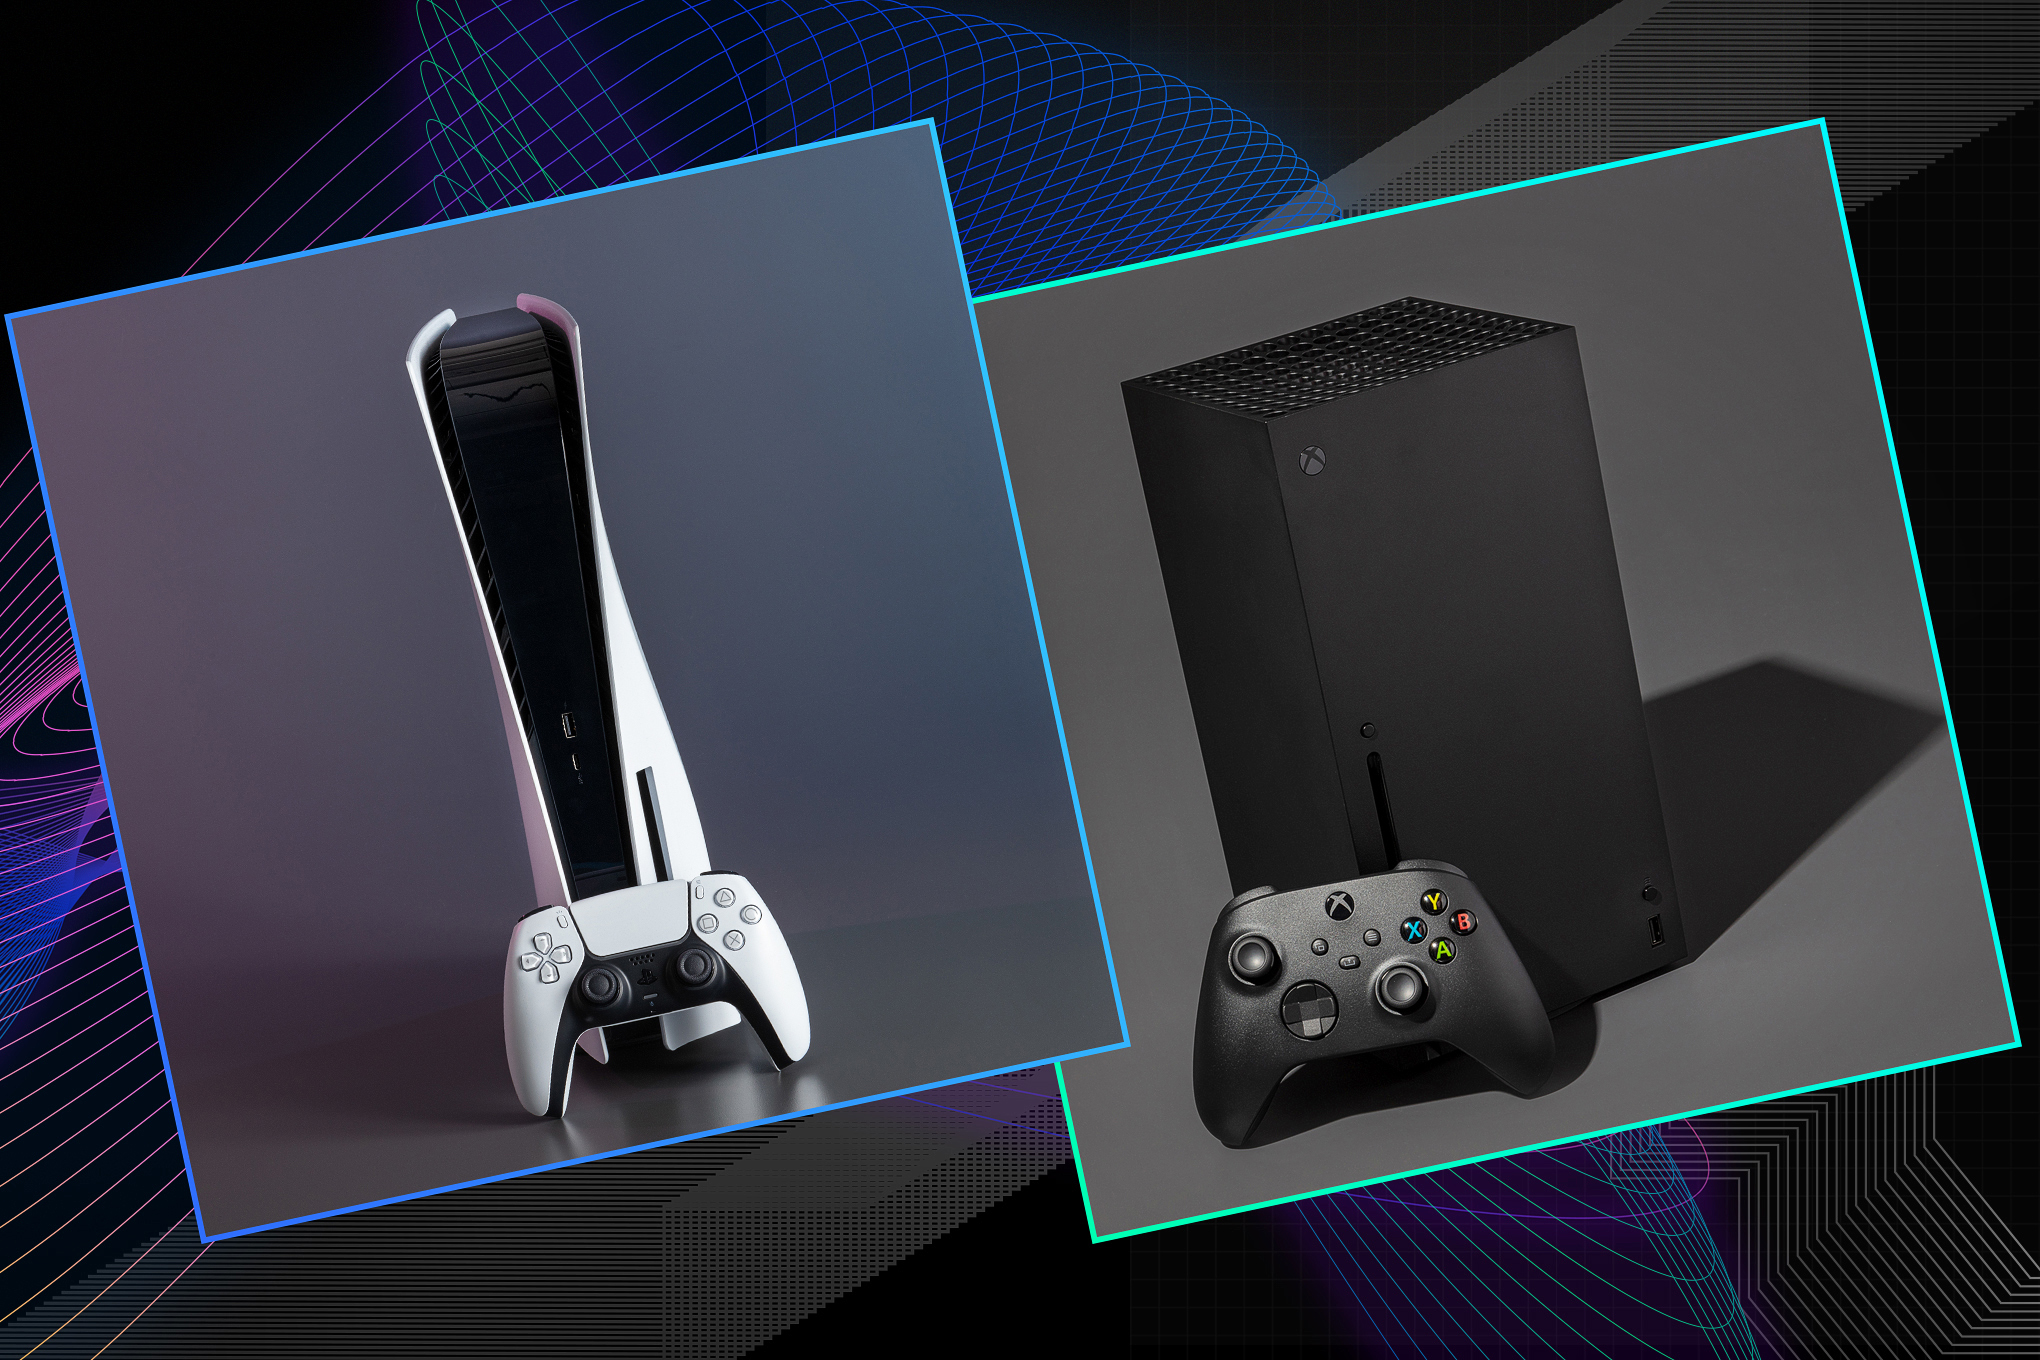 Graphic featuring the PS5 and Xbox Series X consoles